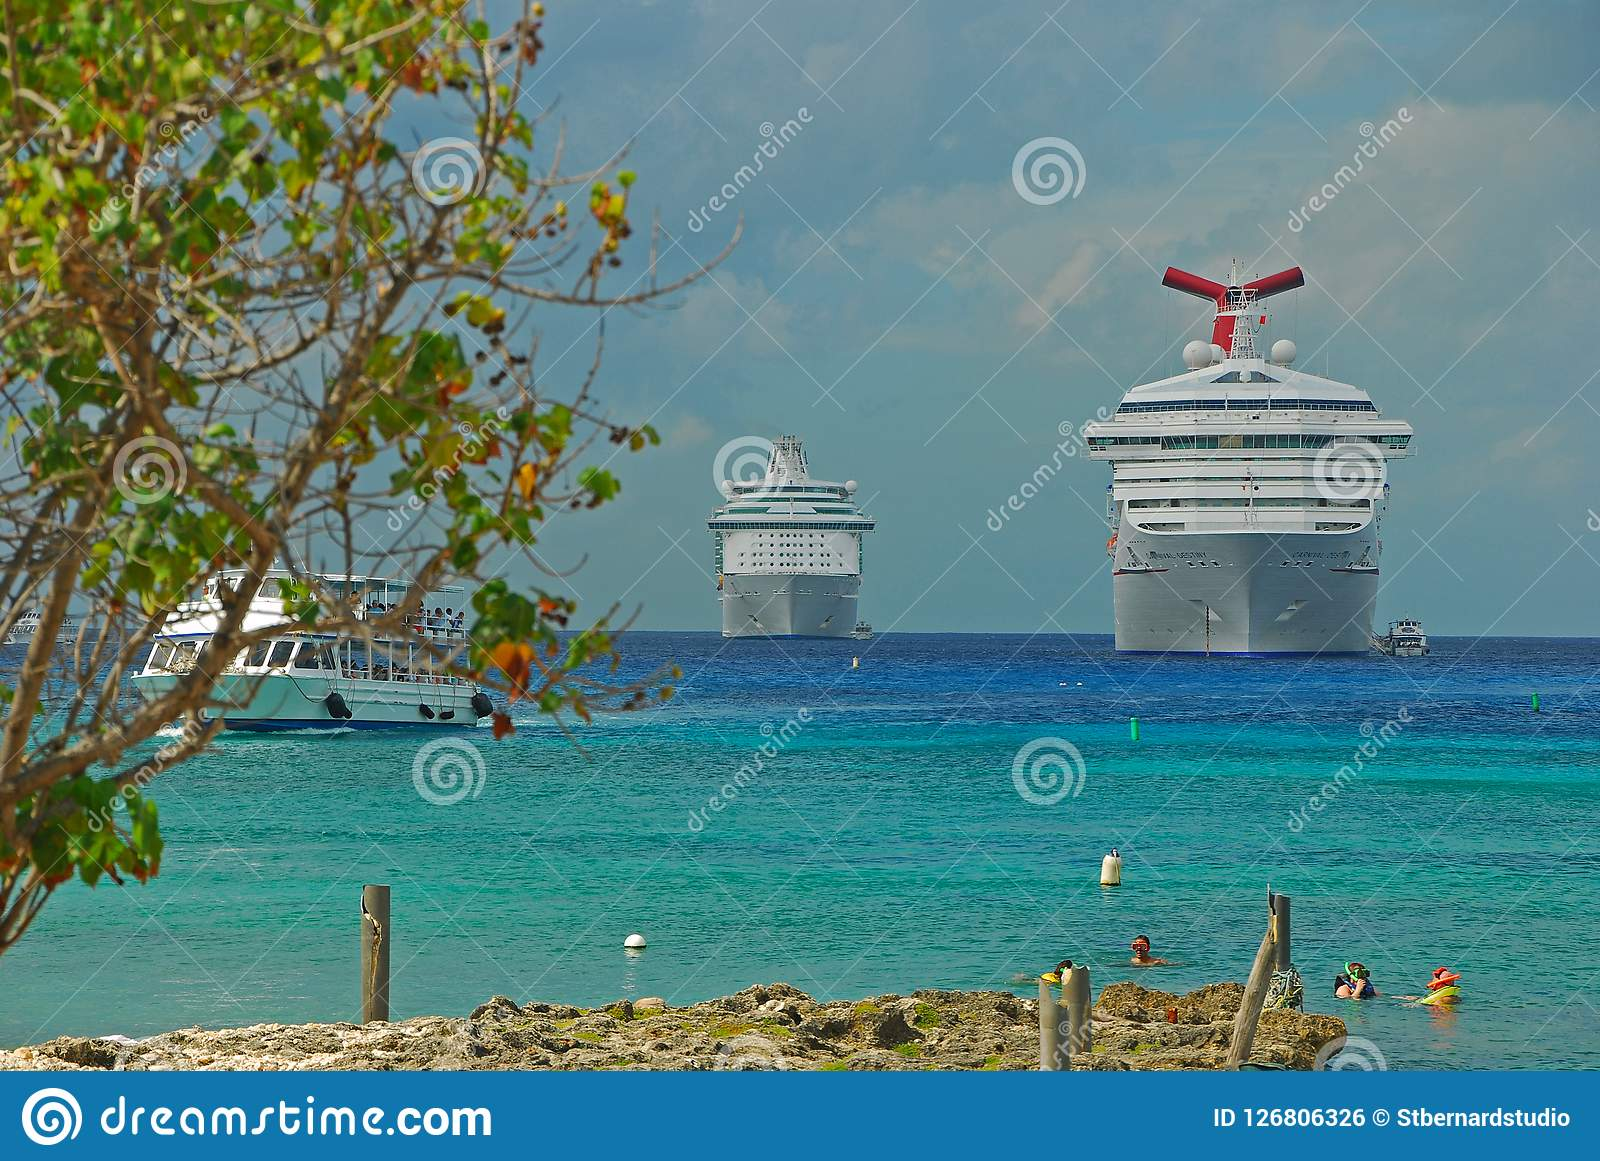 Large Cruise Ships Docking At George Town, Cayman Islands